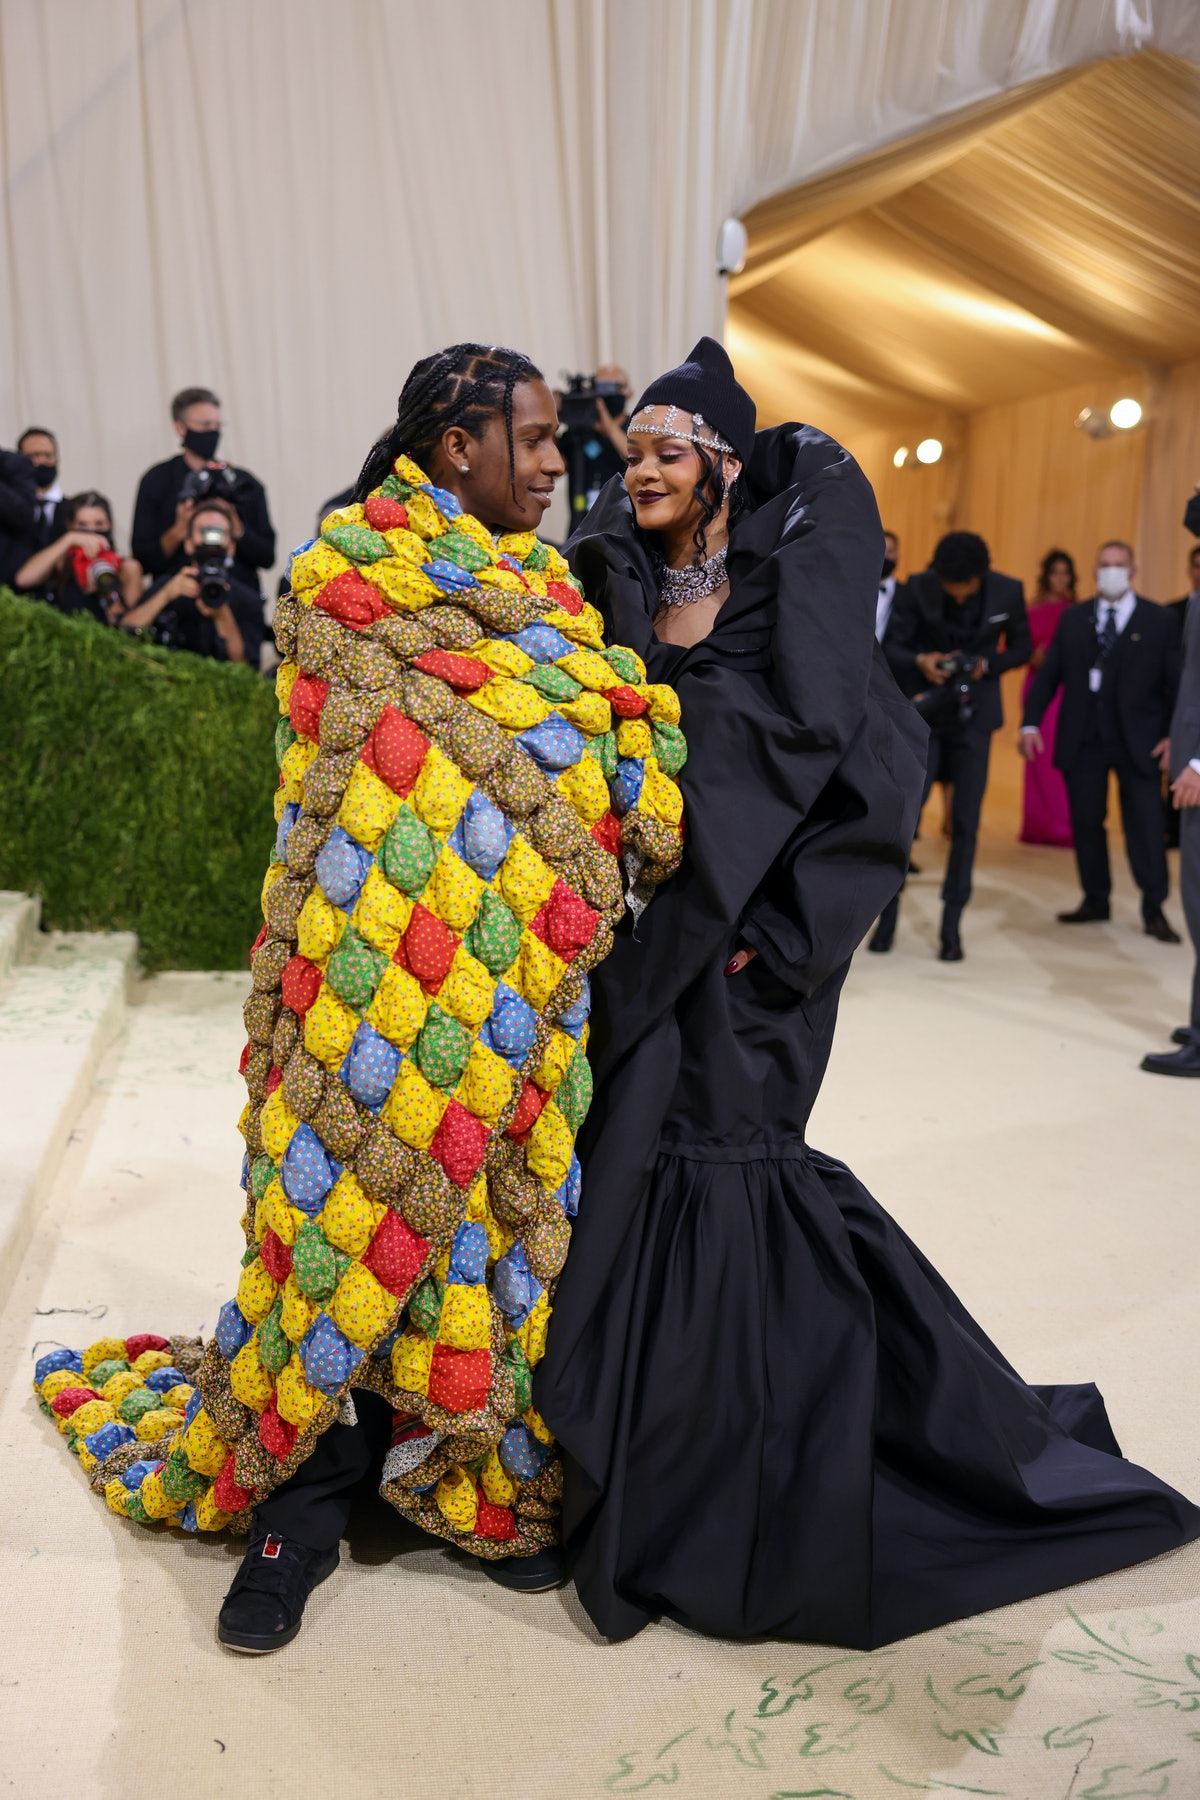 Rihanna and ASAP Rocky's Met Gala body language is full of close, intimate moments.